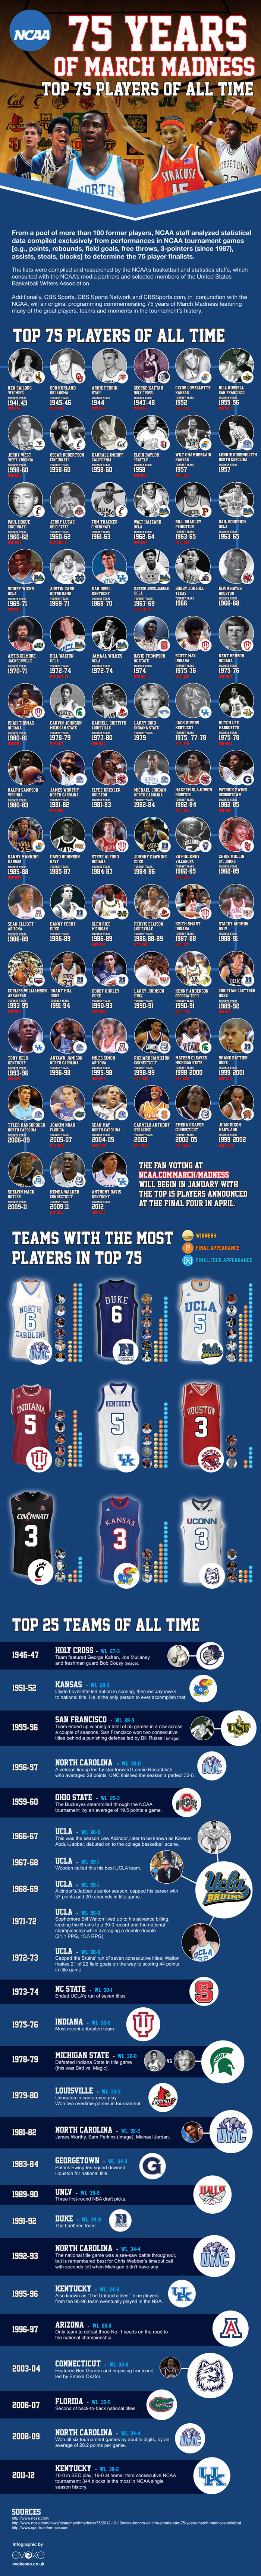 1NCAA-75-years-of-march-madness-Top-75-players